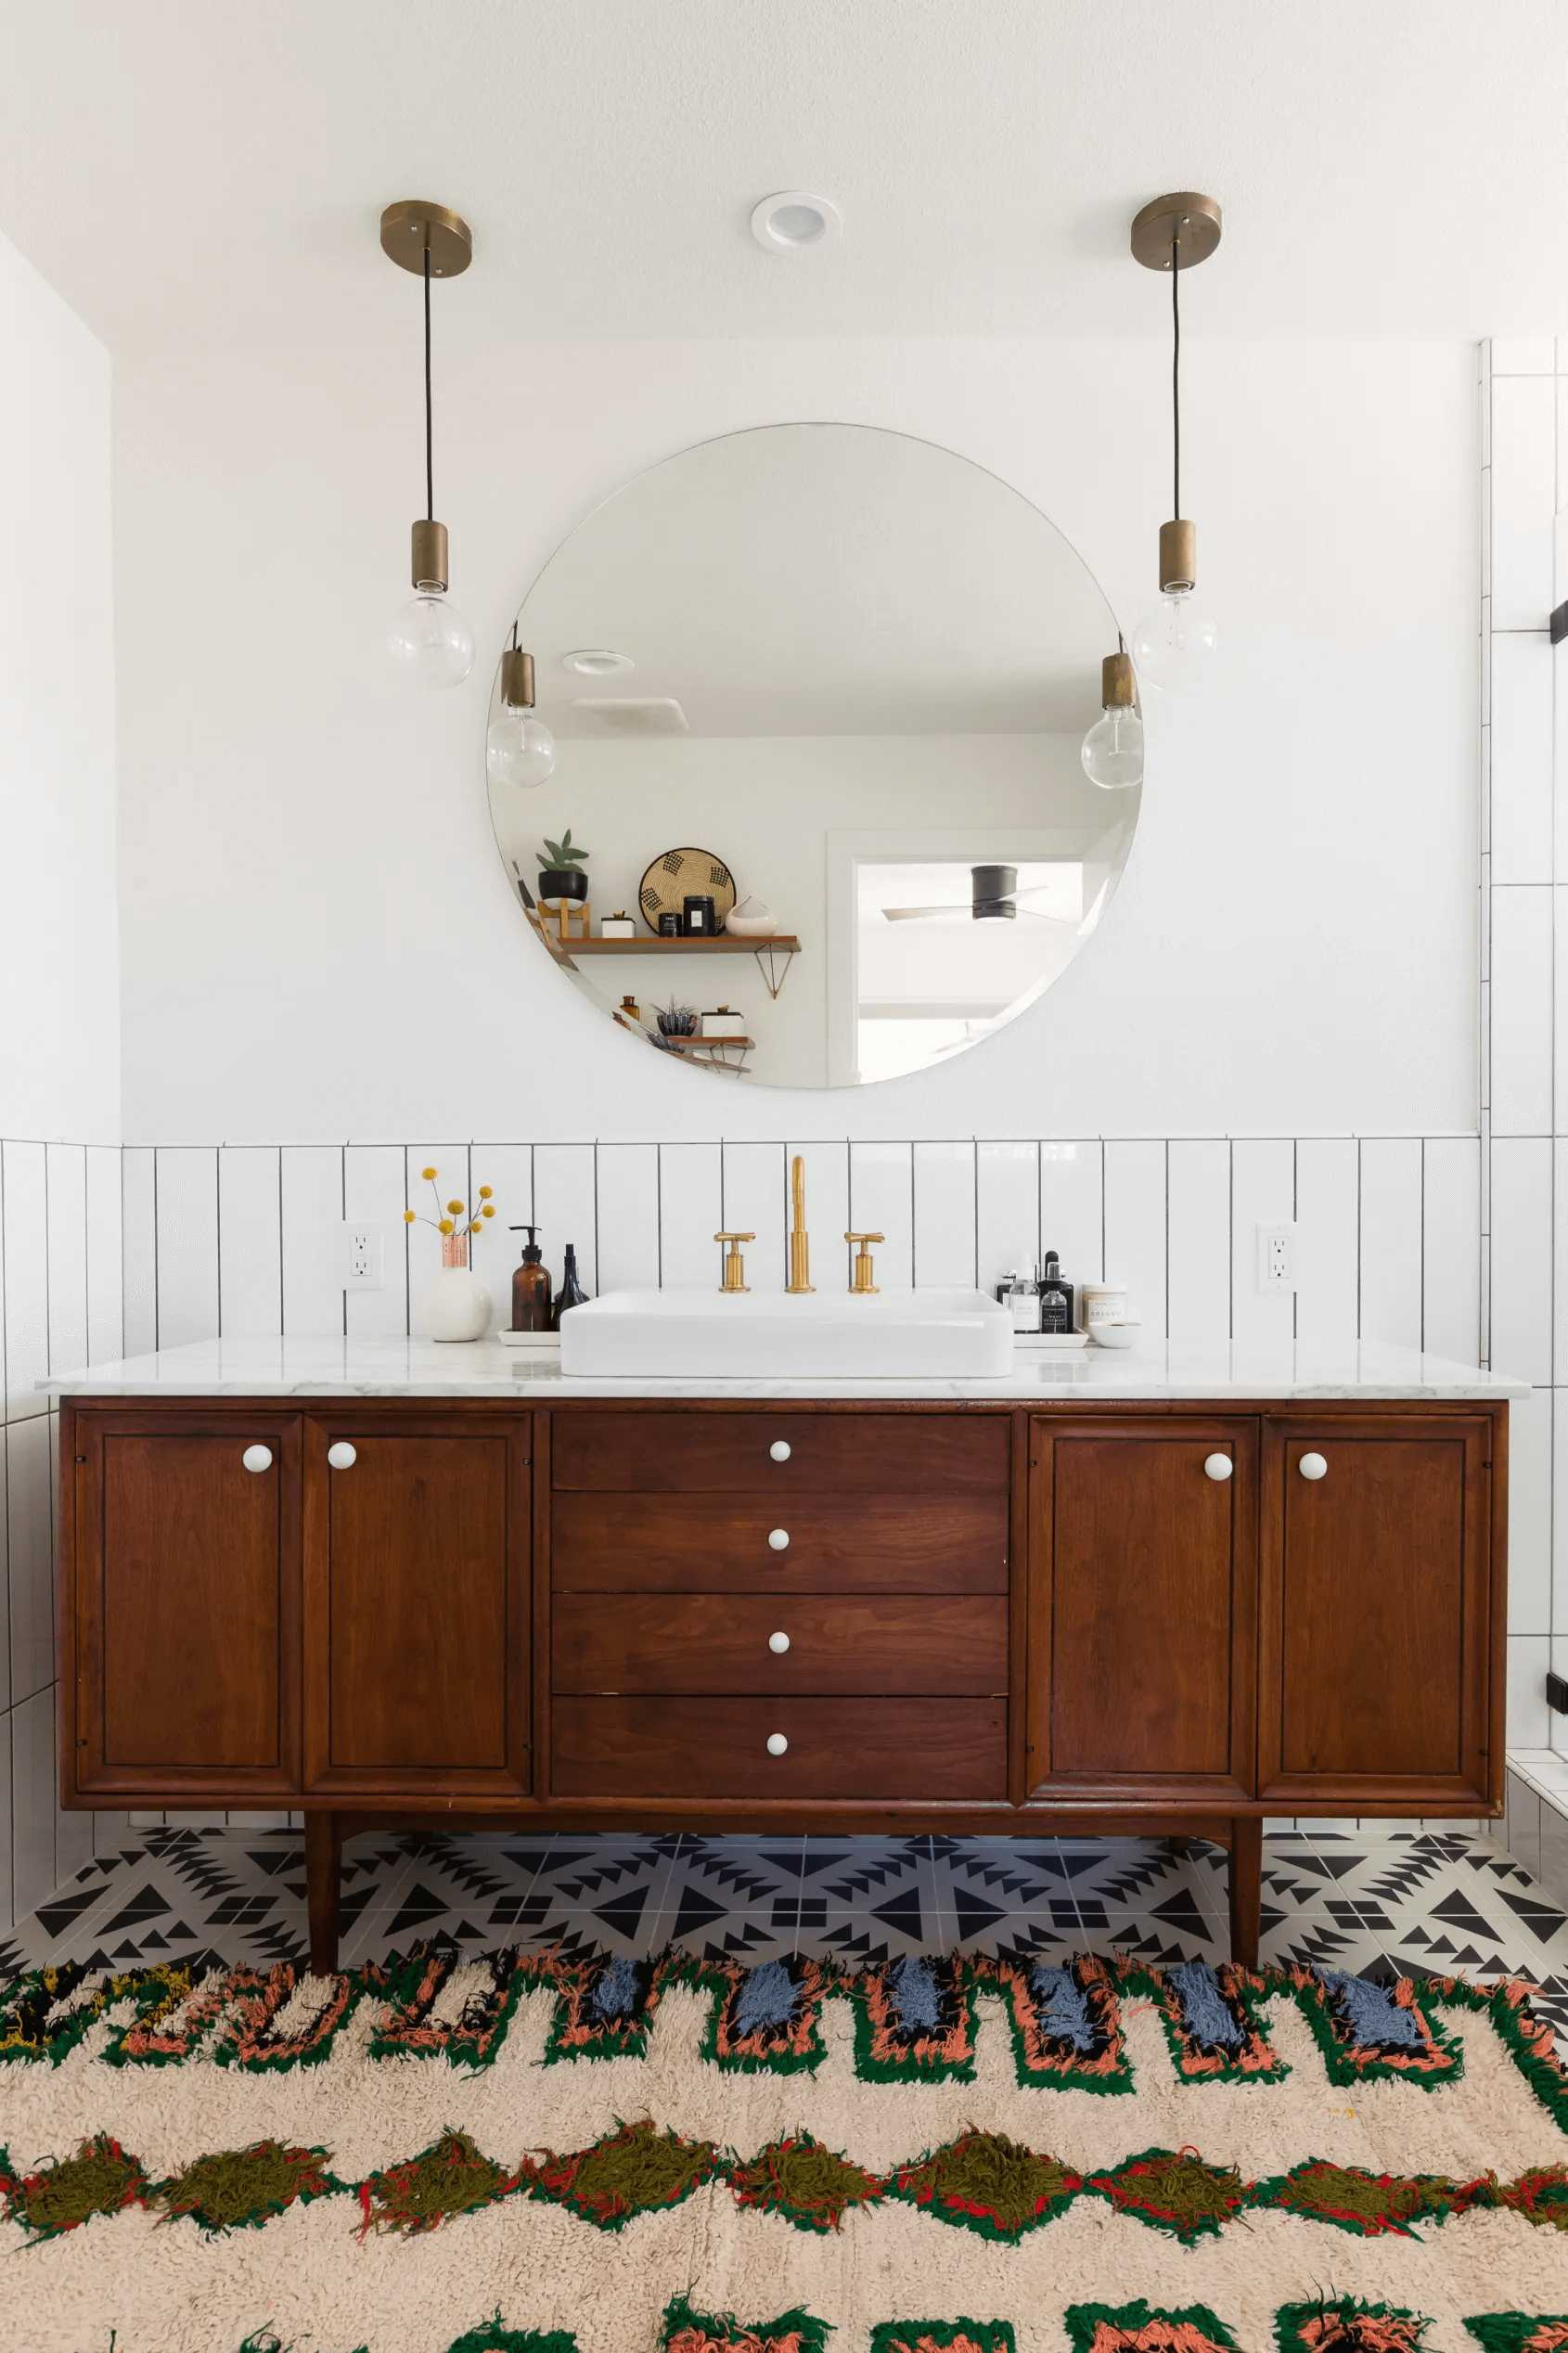 this-is-a-vintage-dark-wooden-cabinet-with-a-statement-mirror-and-apron-sink-in-sight